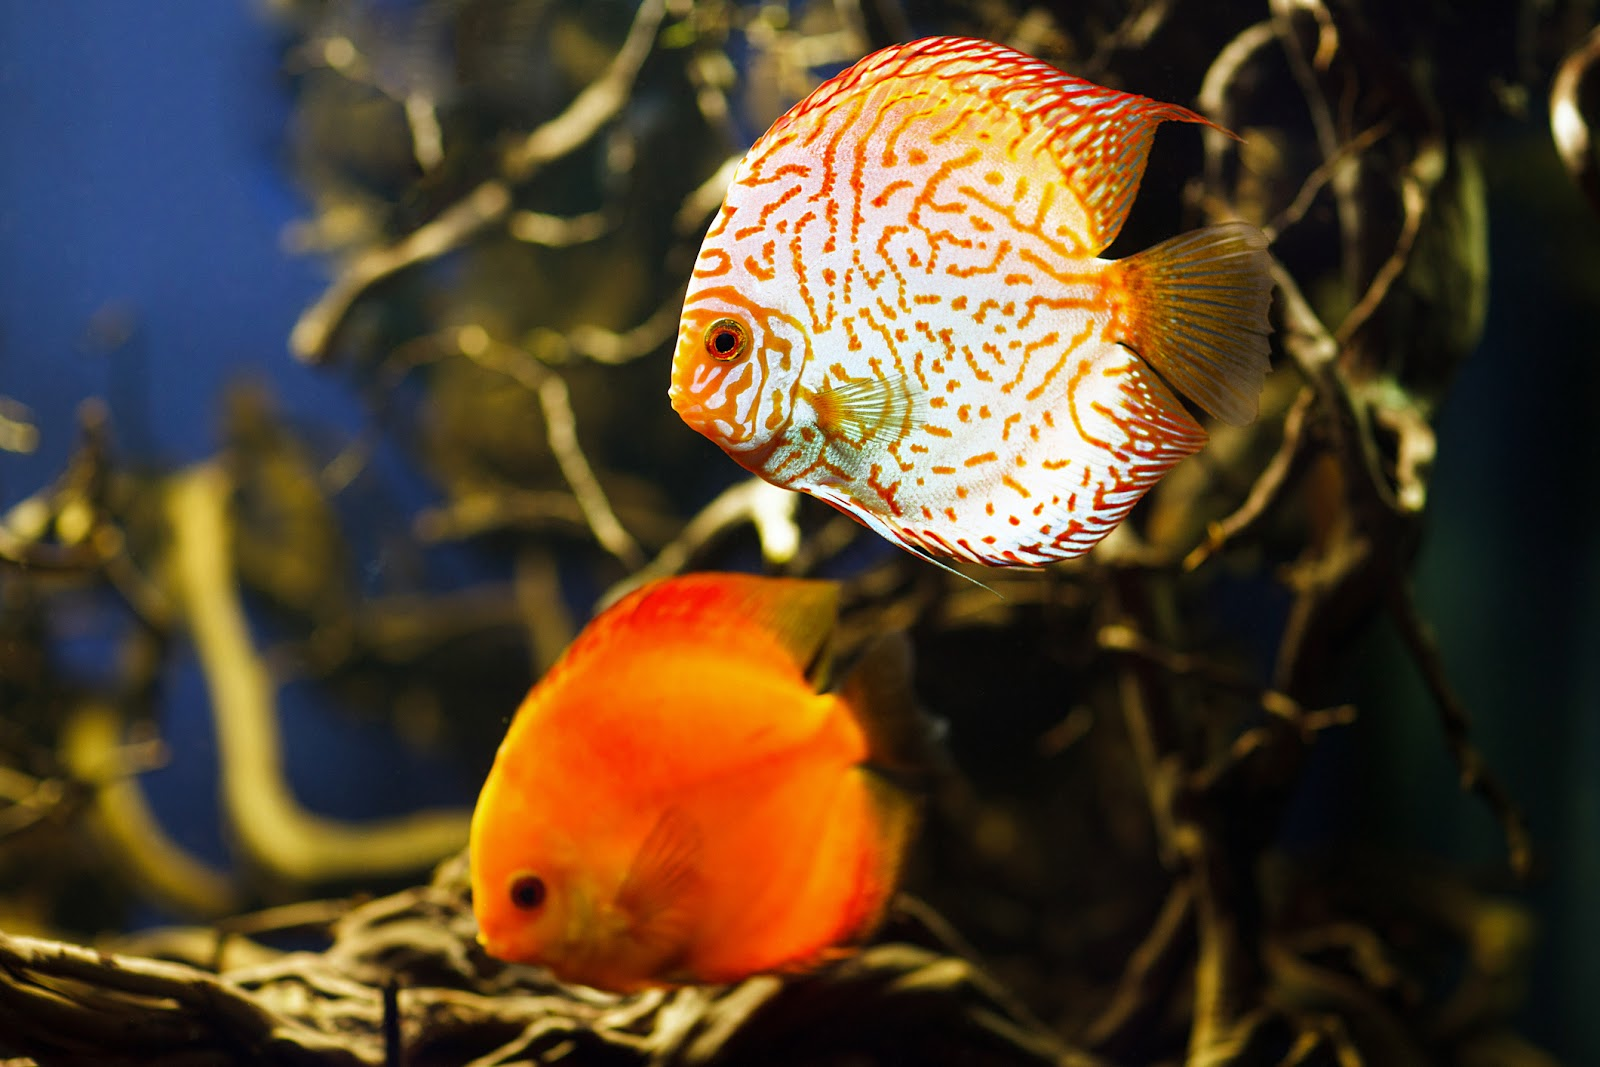 An orange fish swimming in an aquarium